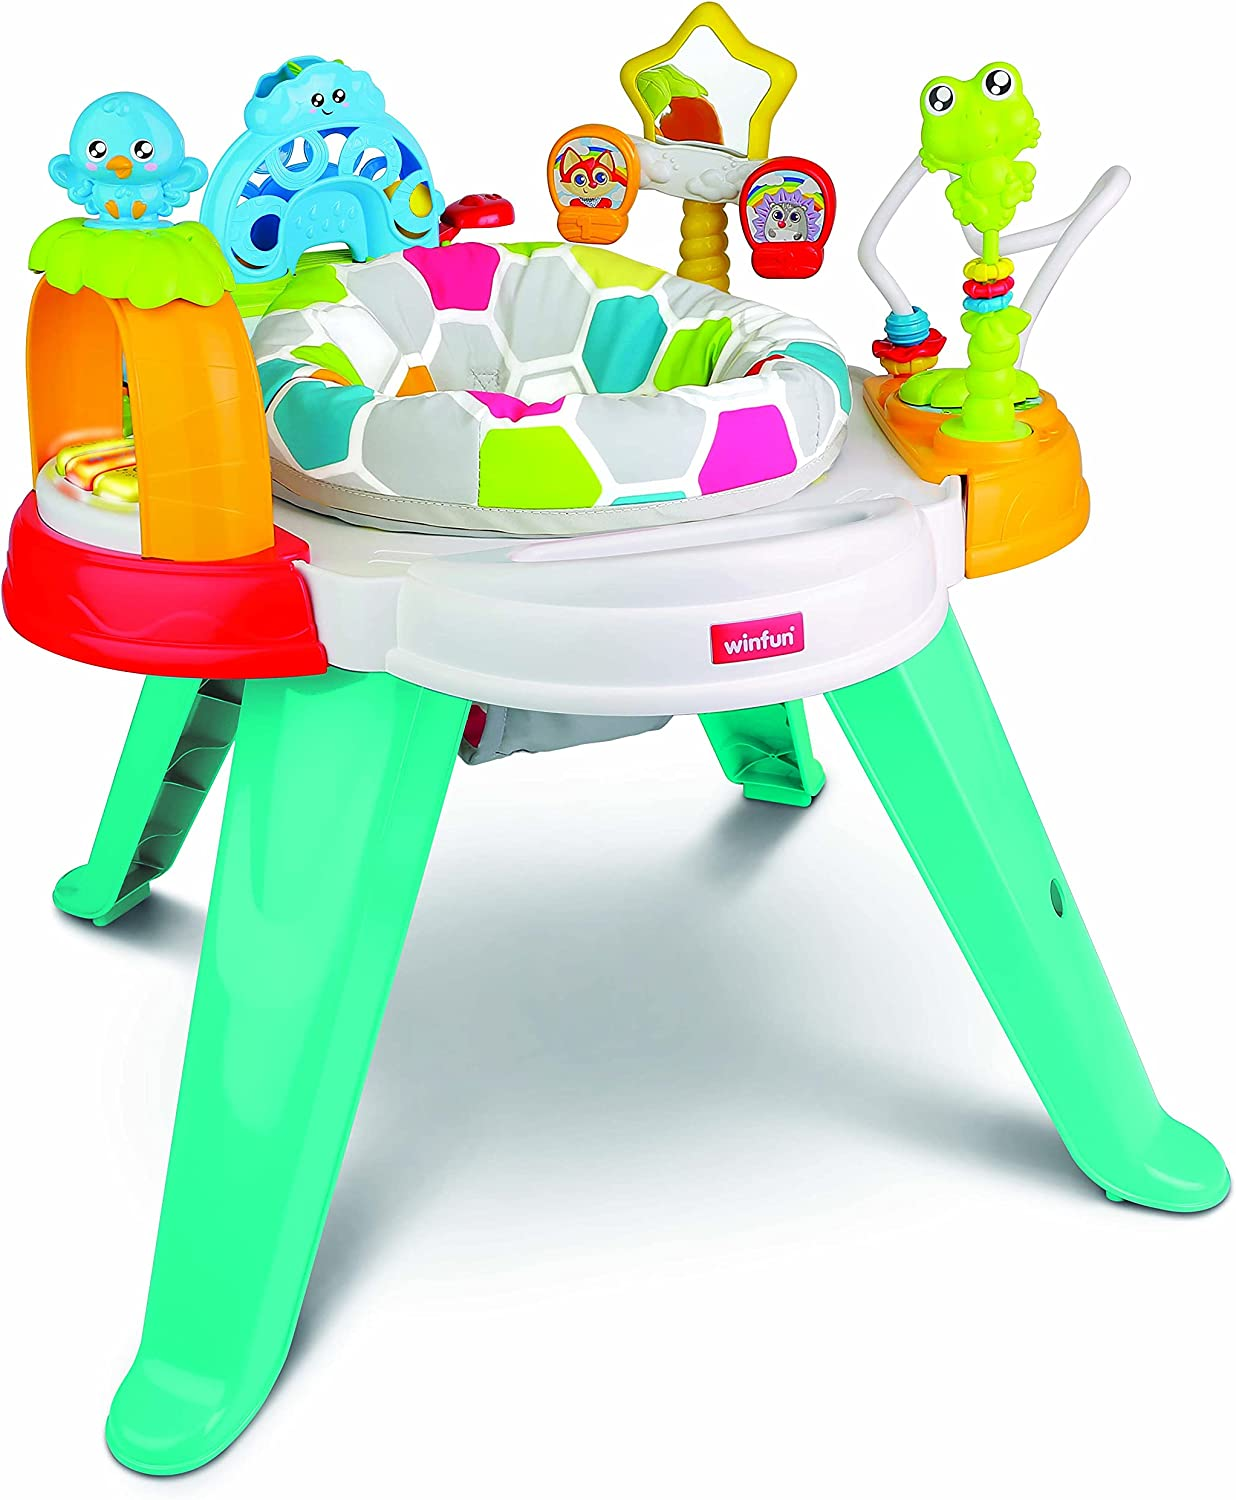 winfun | 3-in-1 Sit and Play, Activity Centre and A Toddler Play Table | Interactive Spinning Clicking and Rattling Toys with Lights and Sounds | Suitable for Boys and Girls 6 Months +